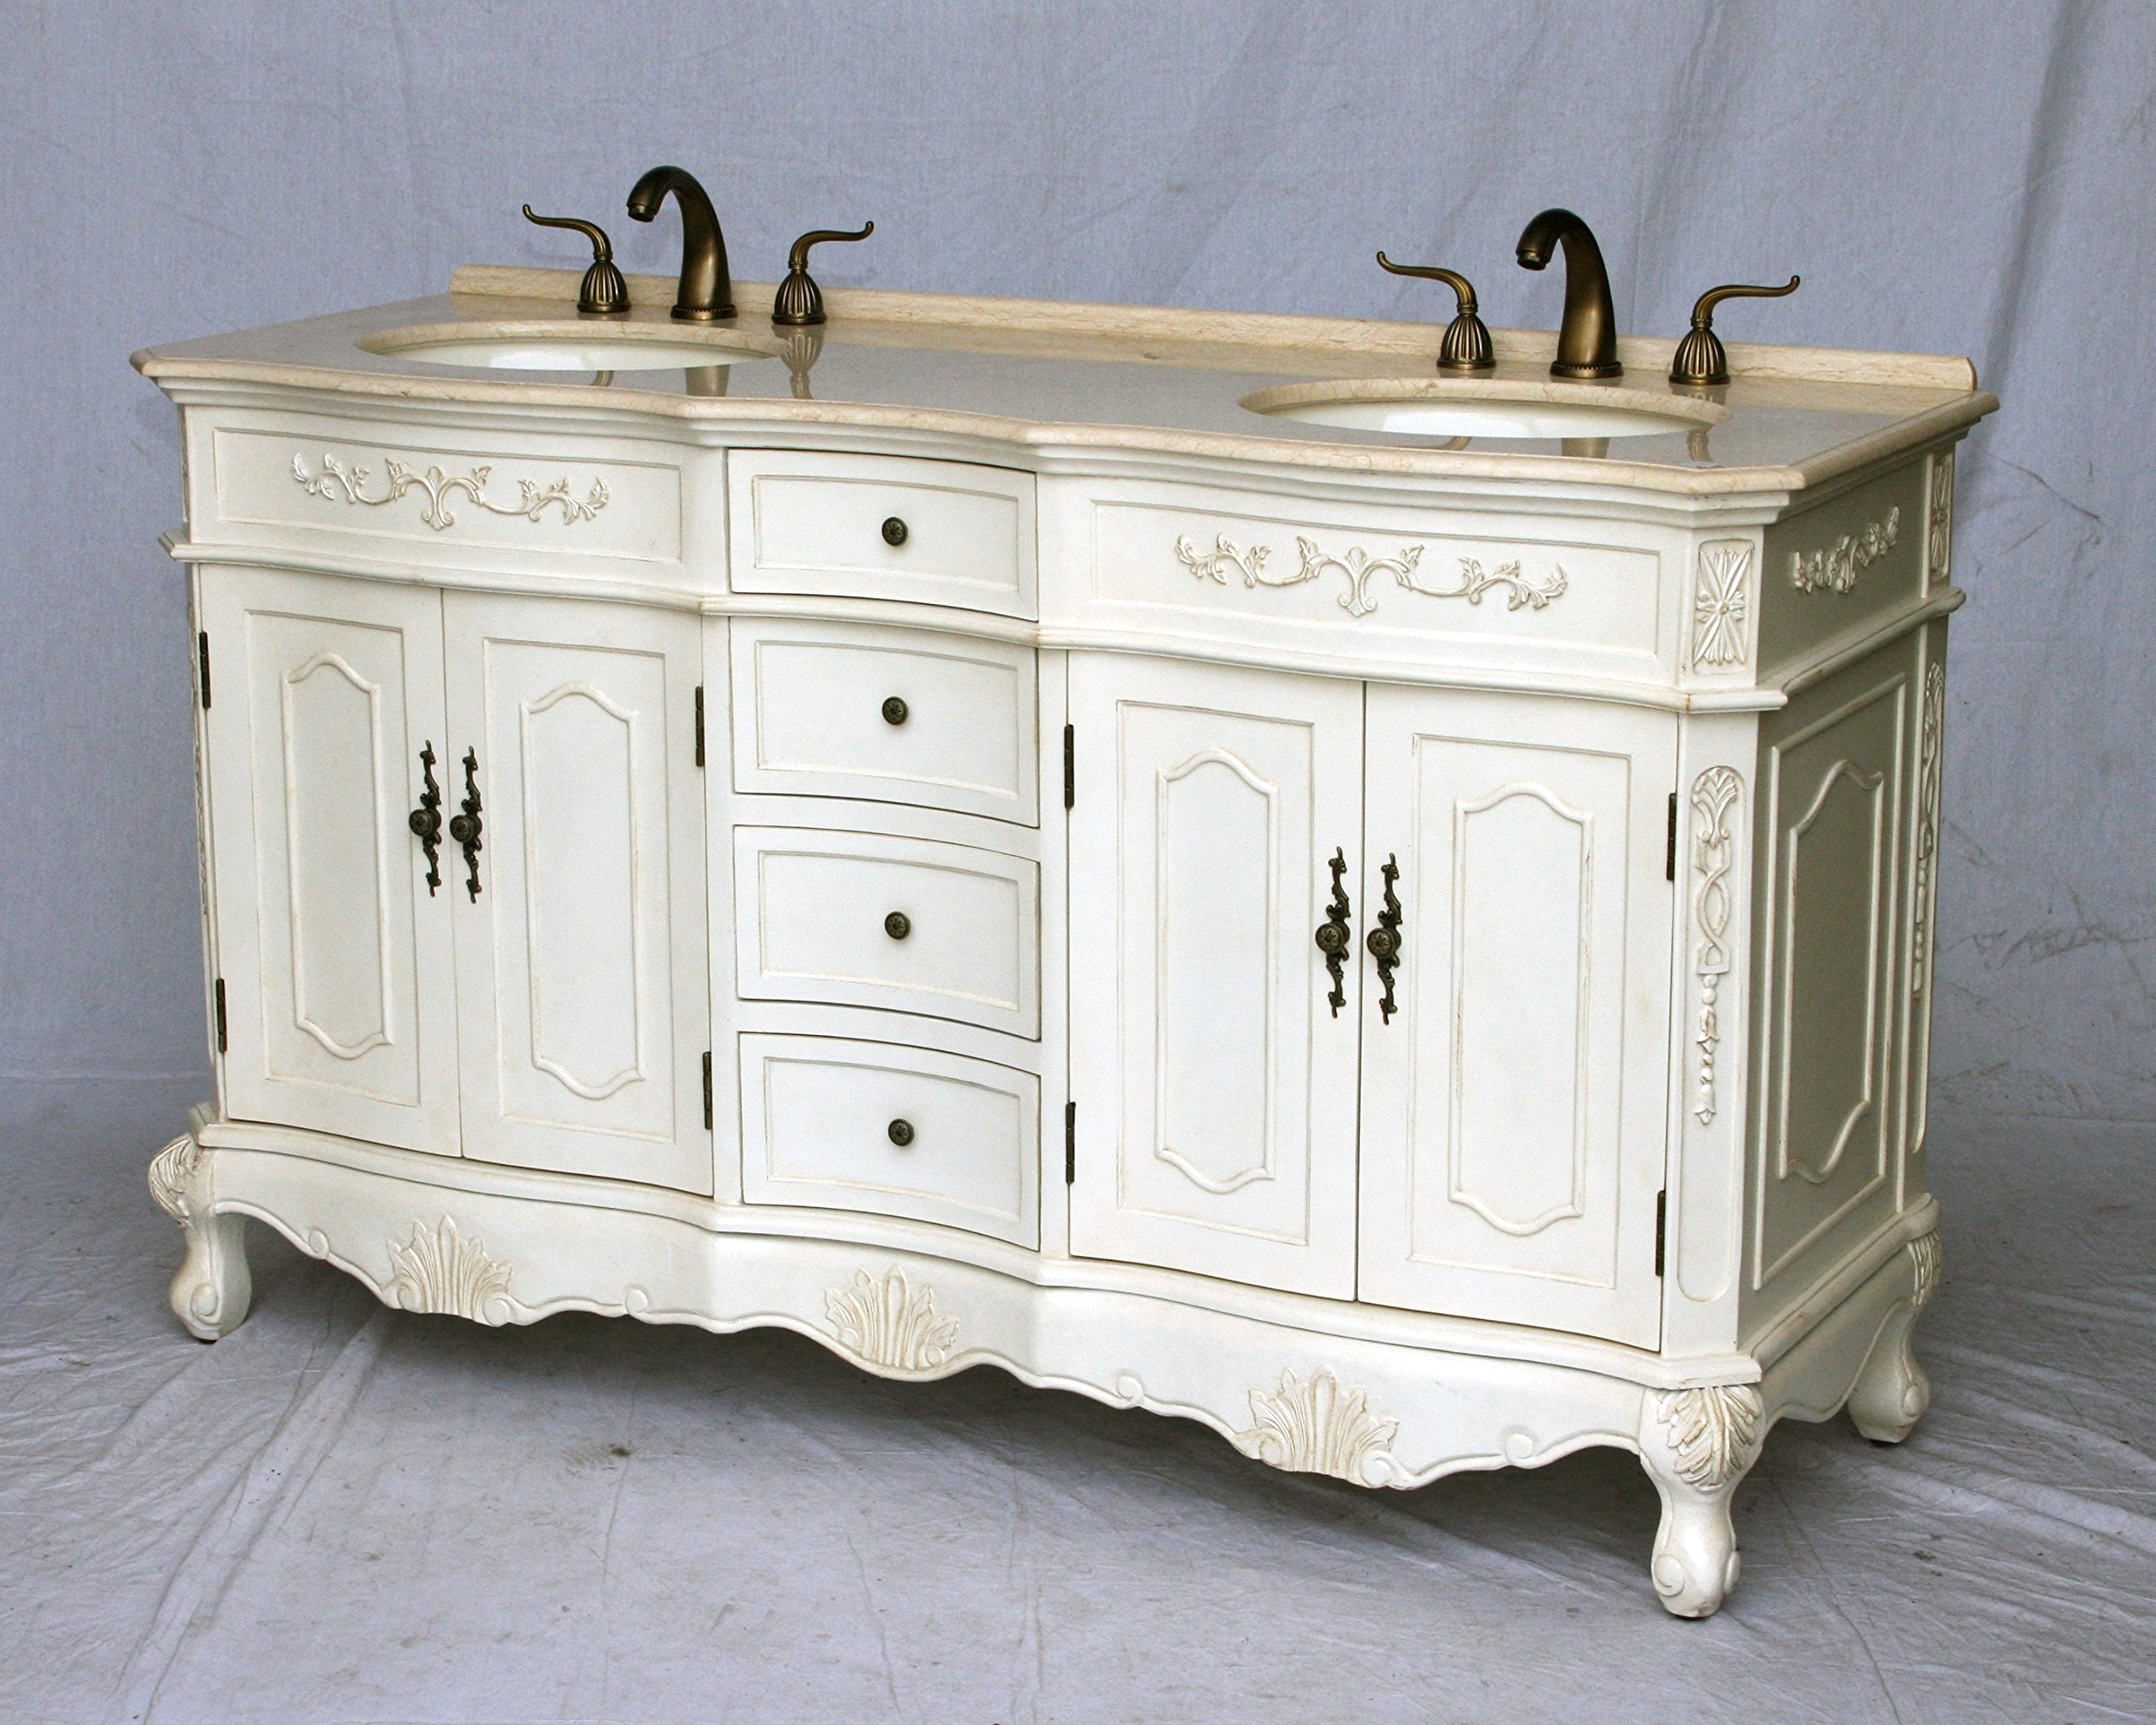 60 inch antique style double sink bathroom vanity model 1905 60 261be for Bathroom vanities vintage style